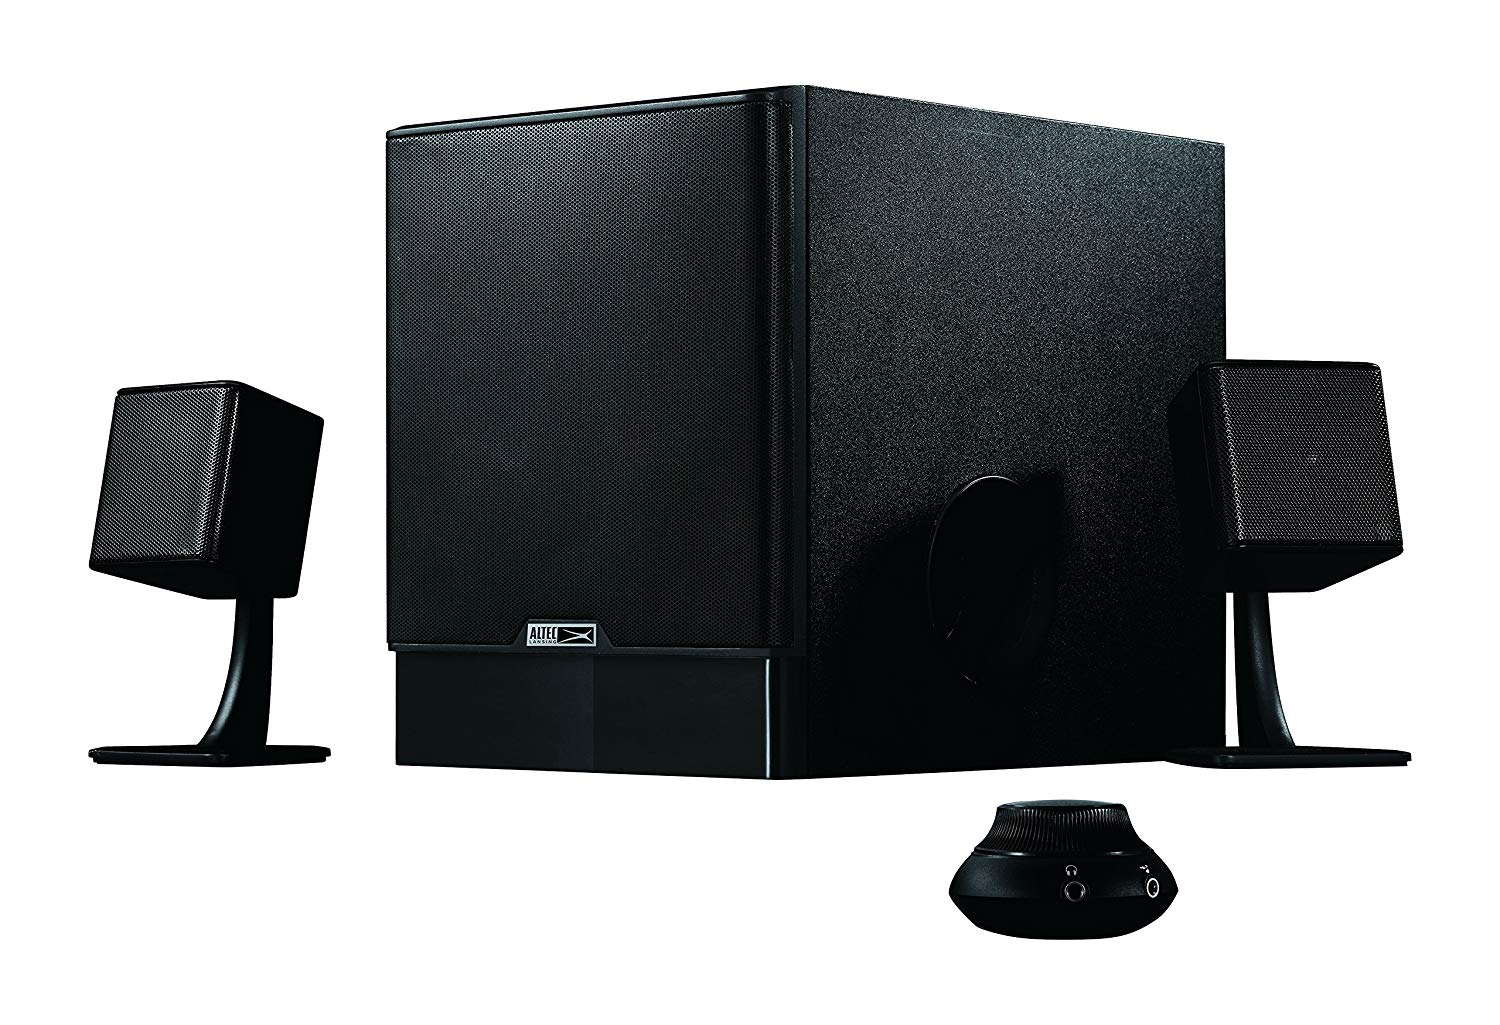 ALTEC LANSING ηχεία Phantom, 2.1ch, 60W RMS, HD Audio, μαύρα - ALTEC 21733